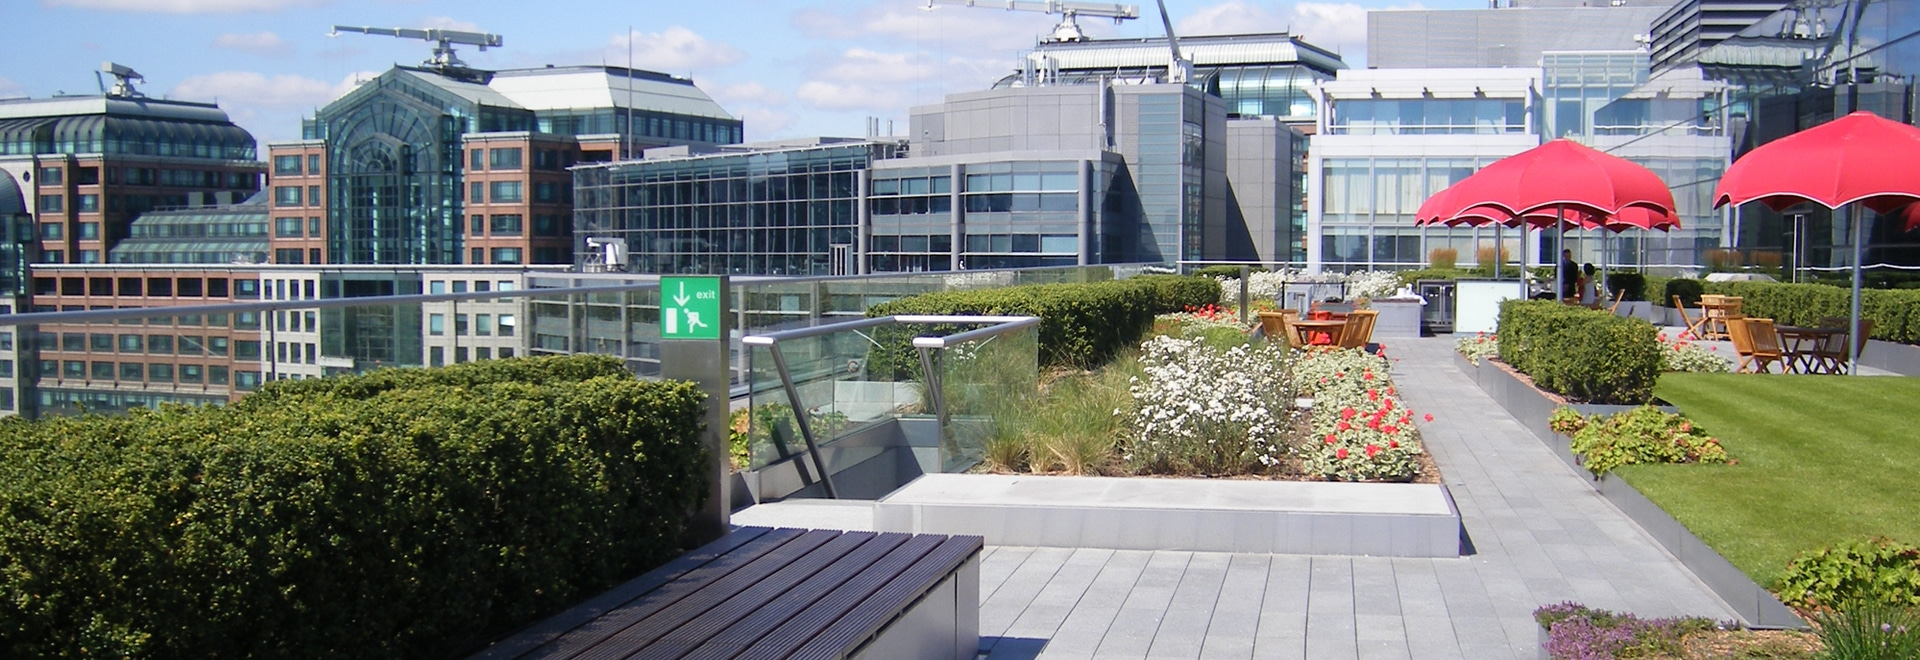 Thanks to the Guard Railing Base GB, the railing can be integrated into the green roof build-up without penetrating the roof membrane.